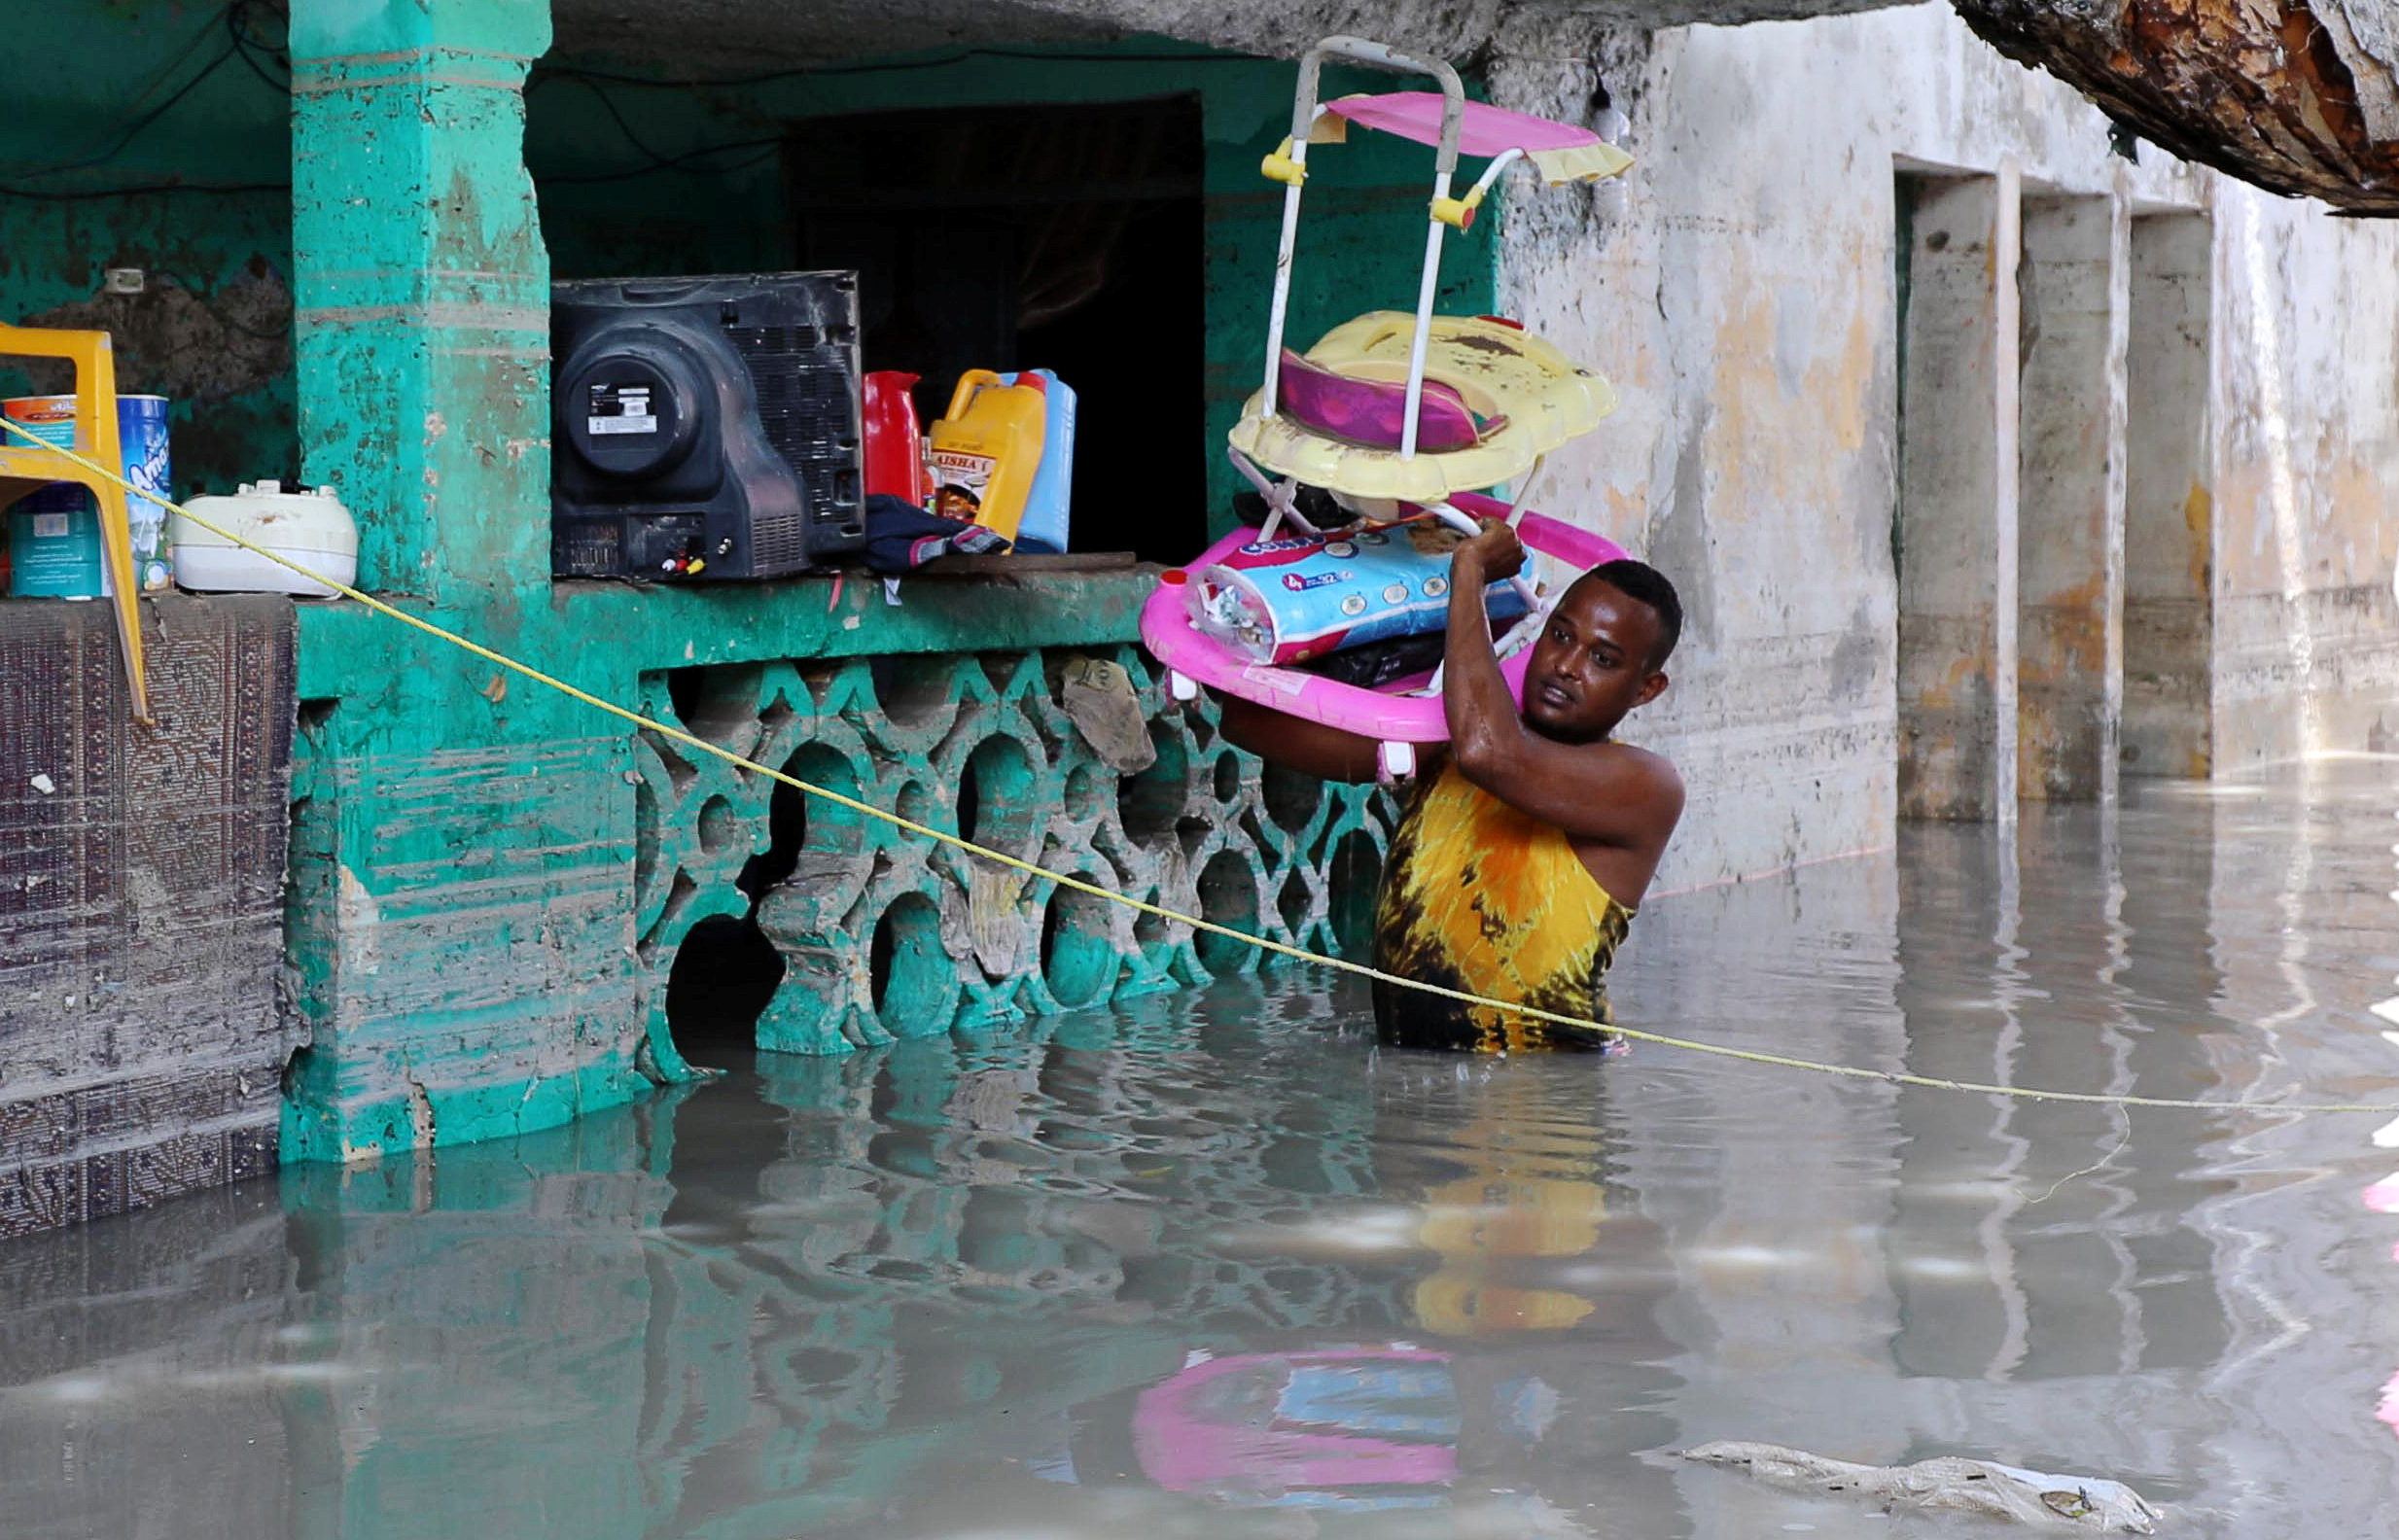 A resident evacuates furniture after rain water flooded his home in Mogadishu, Somalia May 21, 2018.